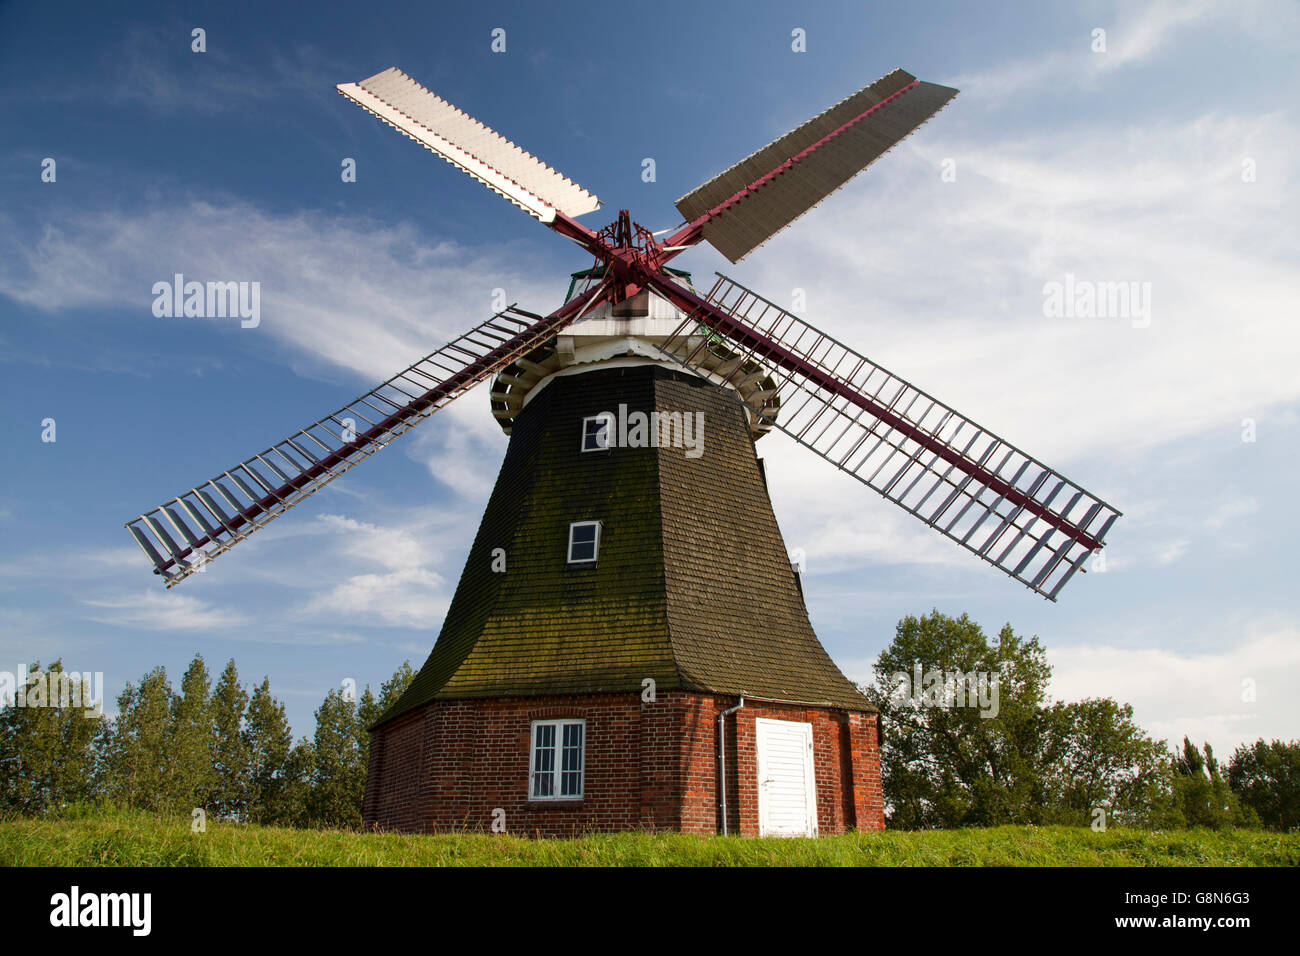 Dutch windmill of Stove, built in 1889, Boiensdorf, Northwest-Mecklenburg District, Mecklenburg-Western Pomerania - Stock Image